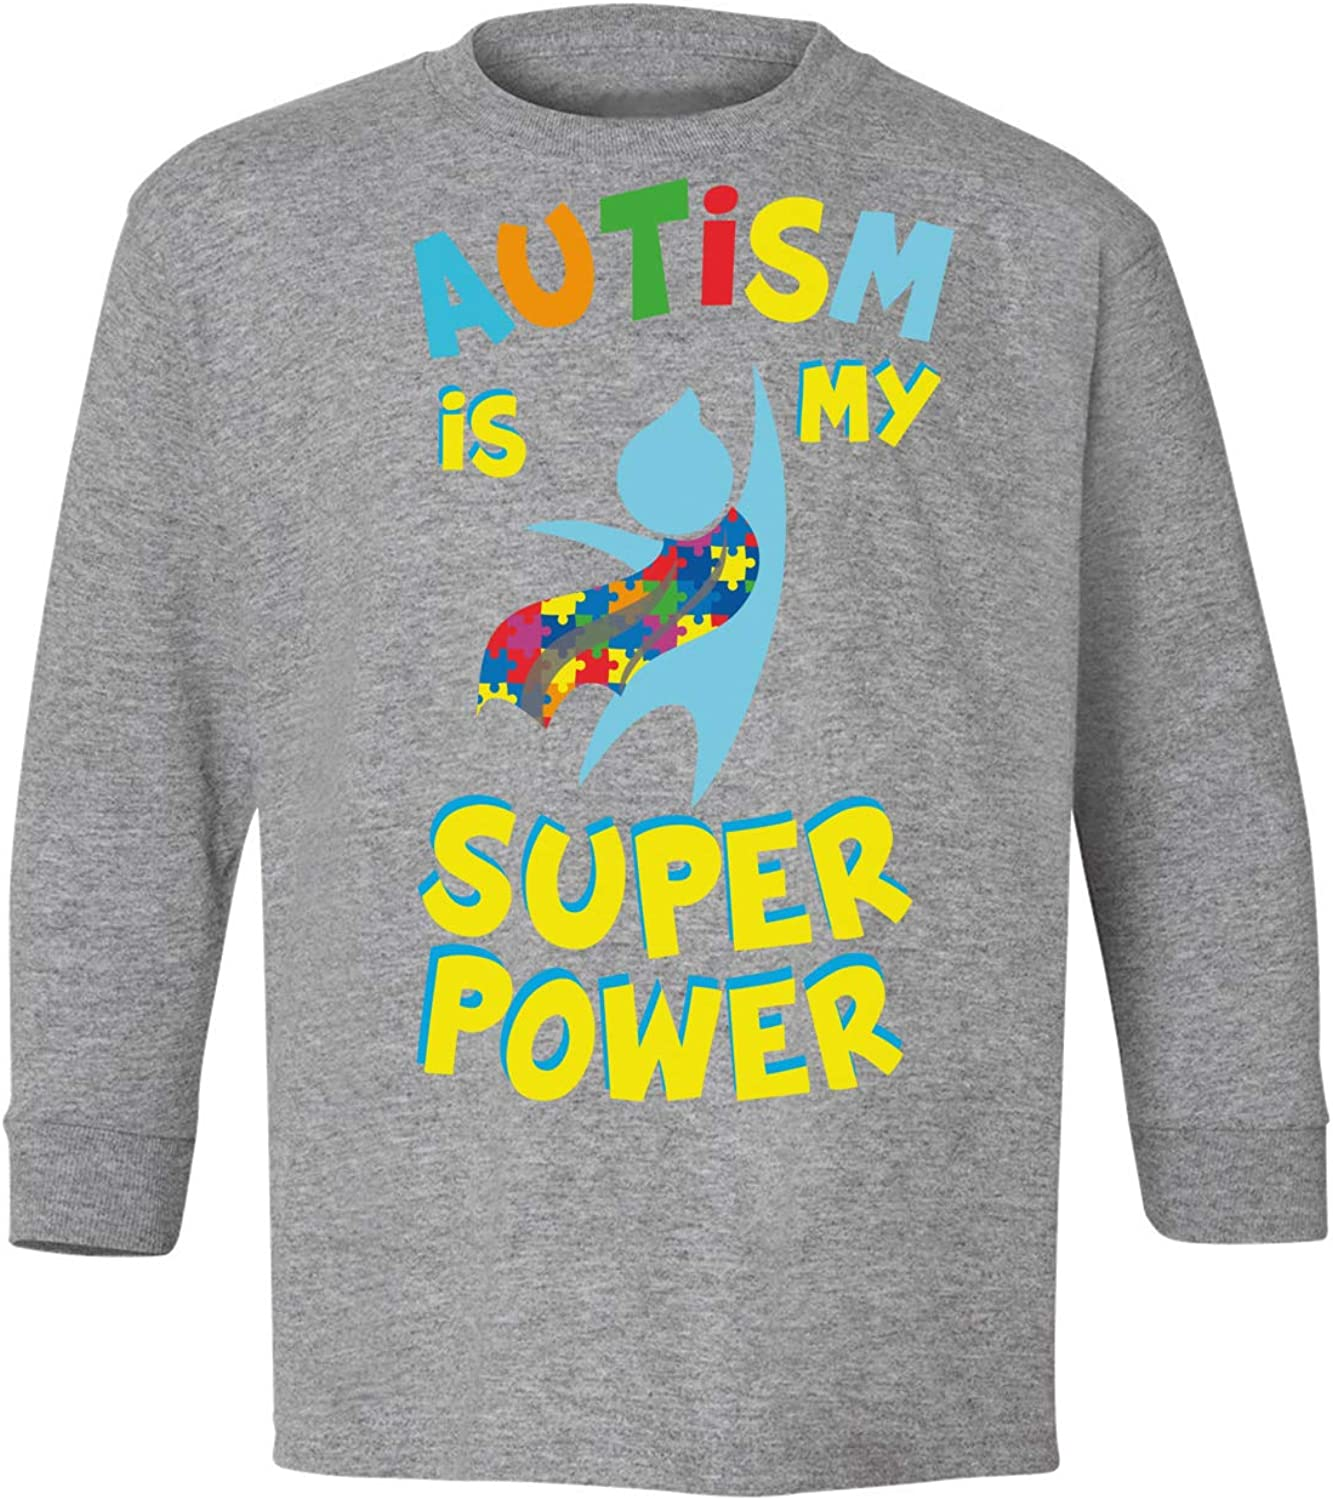 Awkward Styles Autism Youth Long Sleeve T-Shirt Autism is My Super Power Crewneck Tee for Kids